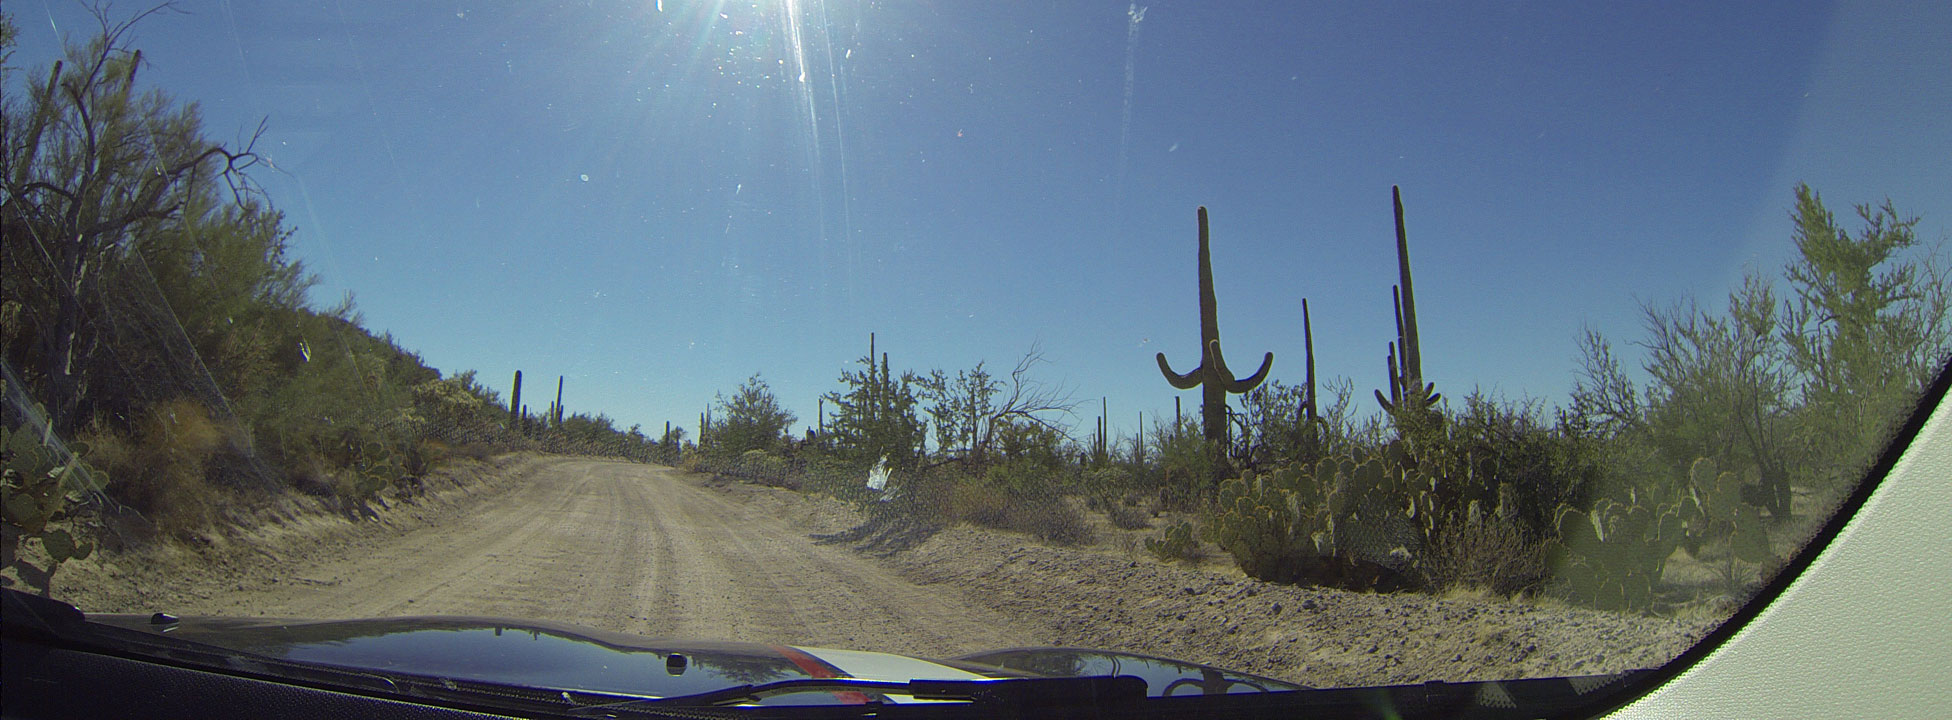 Dash cam: driving in the Sauguaro National Park near Tucson